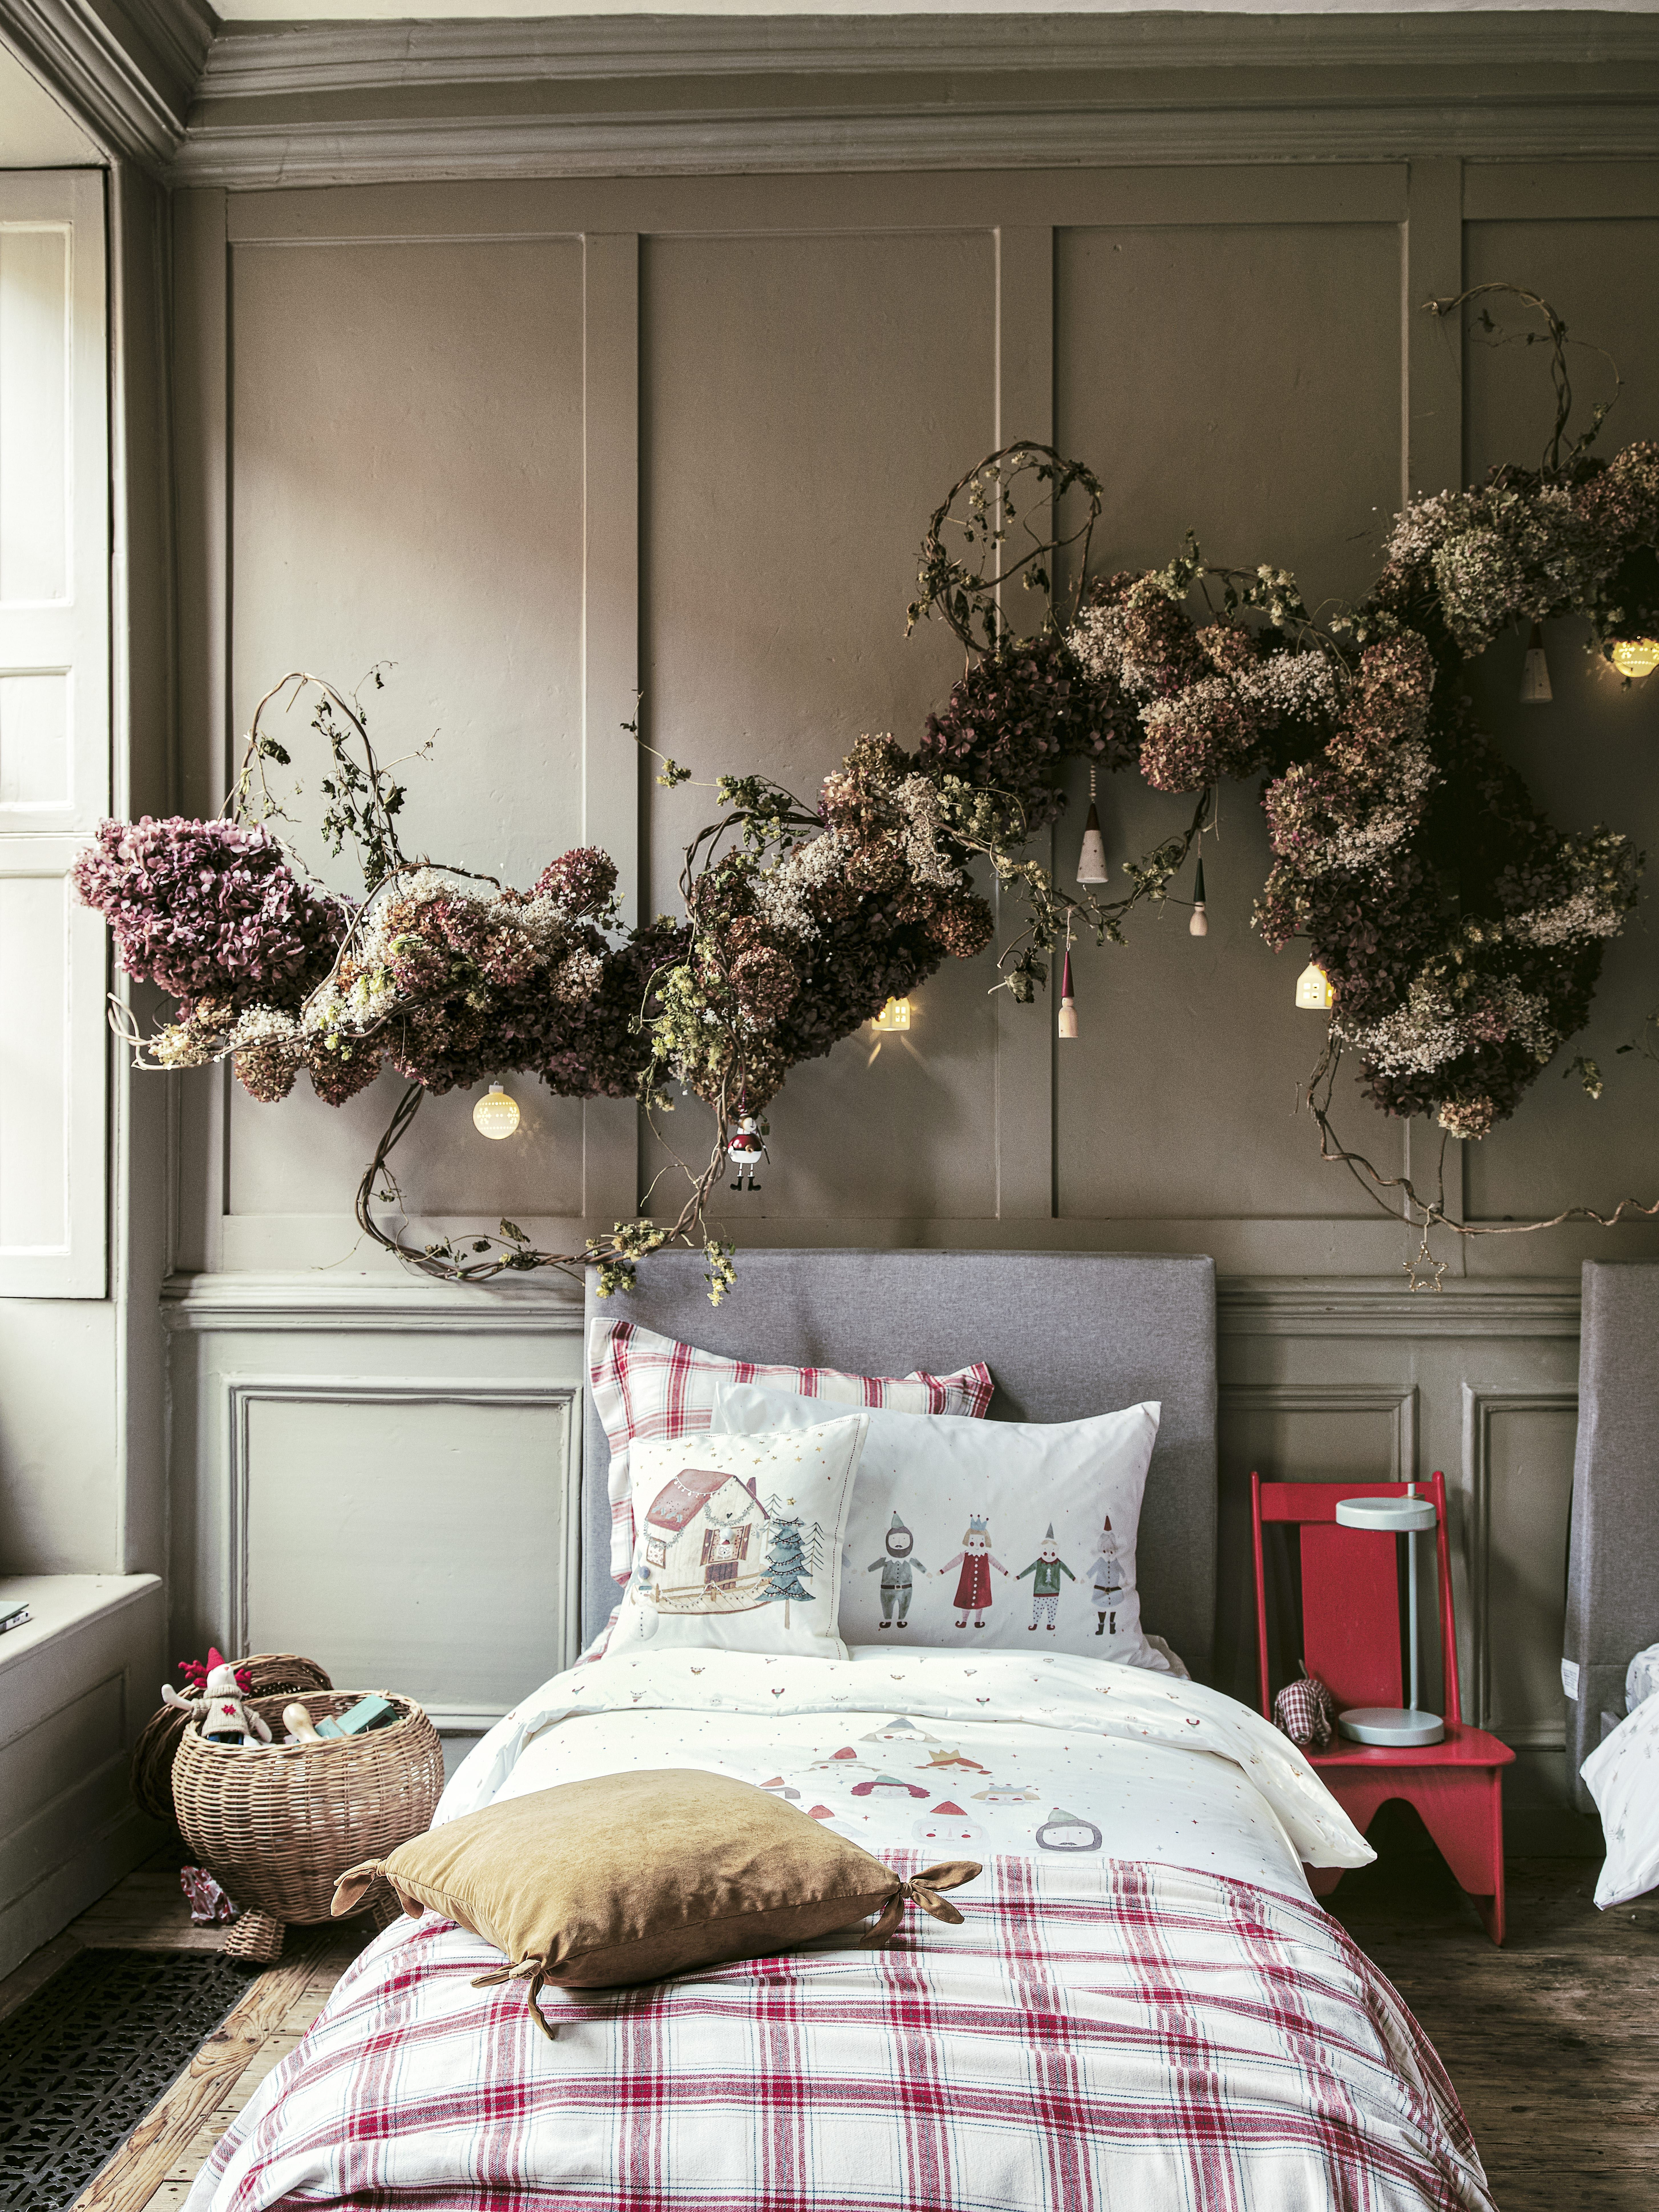 Revendeur Farrow And Ball Bordeaux pin de dilara en mert ❤️ | casas de navidad, zara home